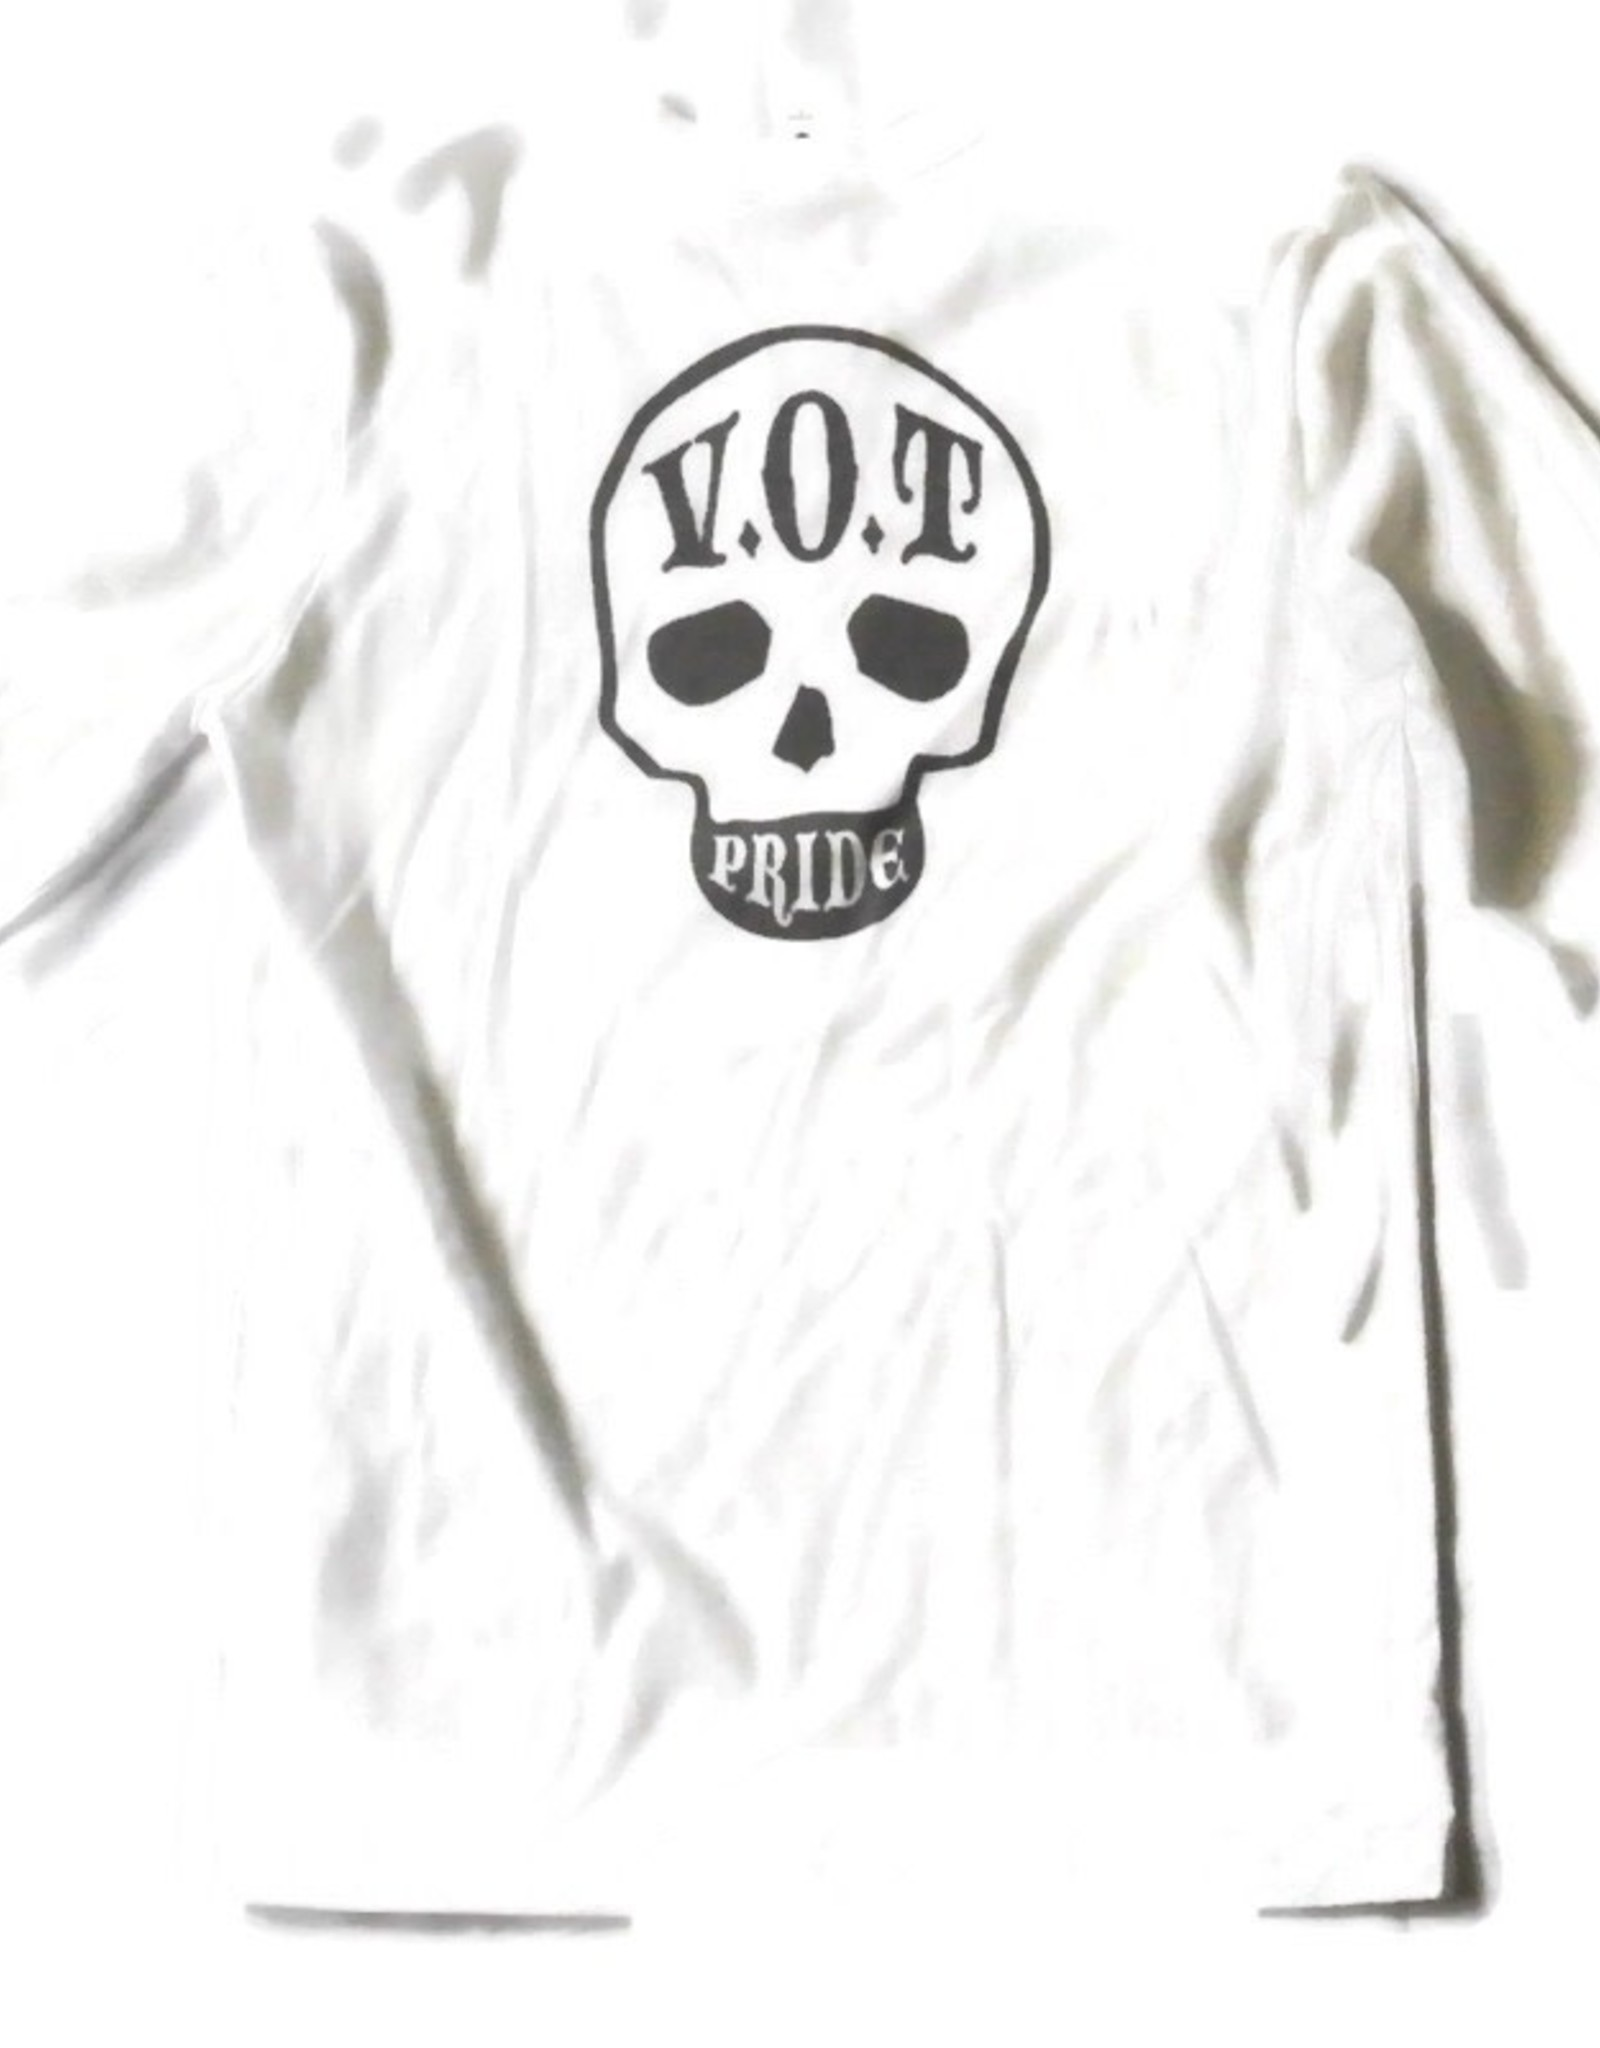 V.O.T. PRIDE V.O.T. Pride Long Sleeve WHITE\DARK GRAY